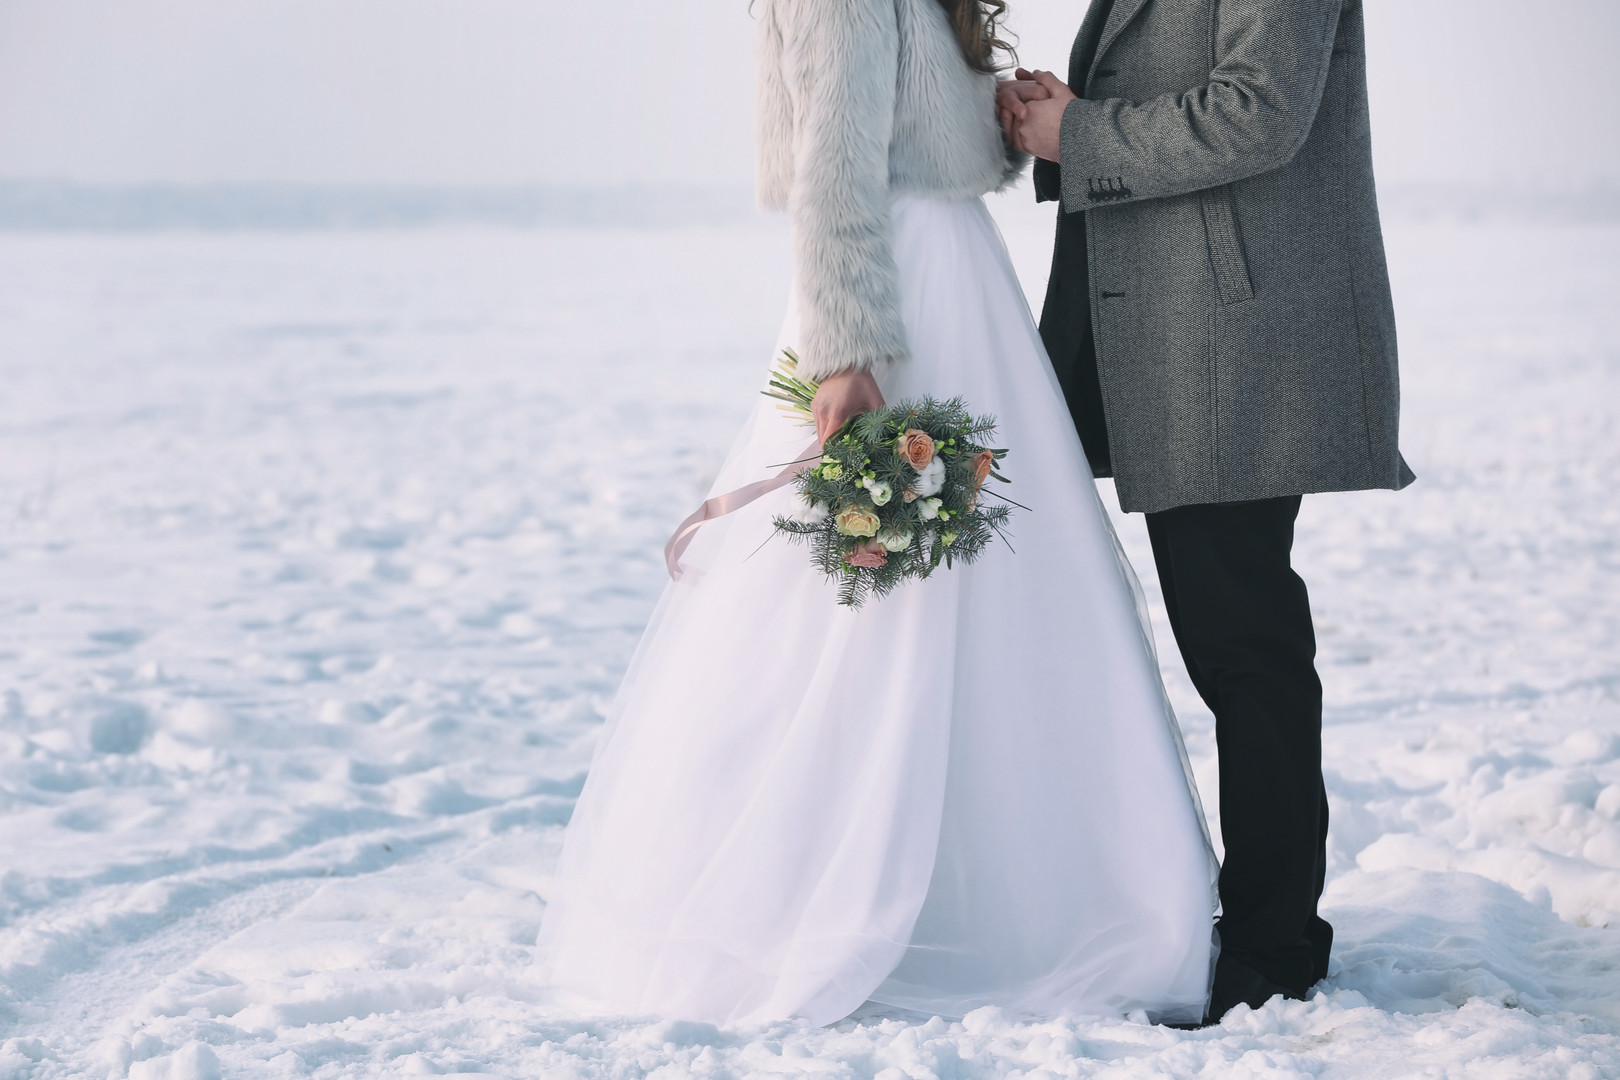 Hire Snow Machines for Winter Wedding